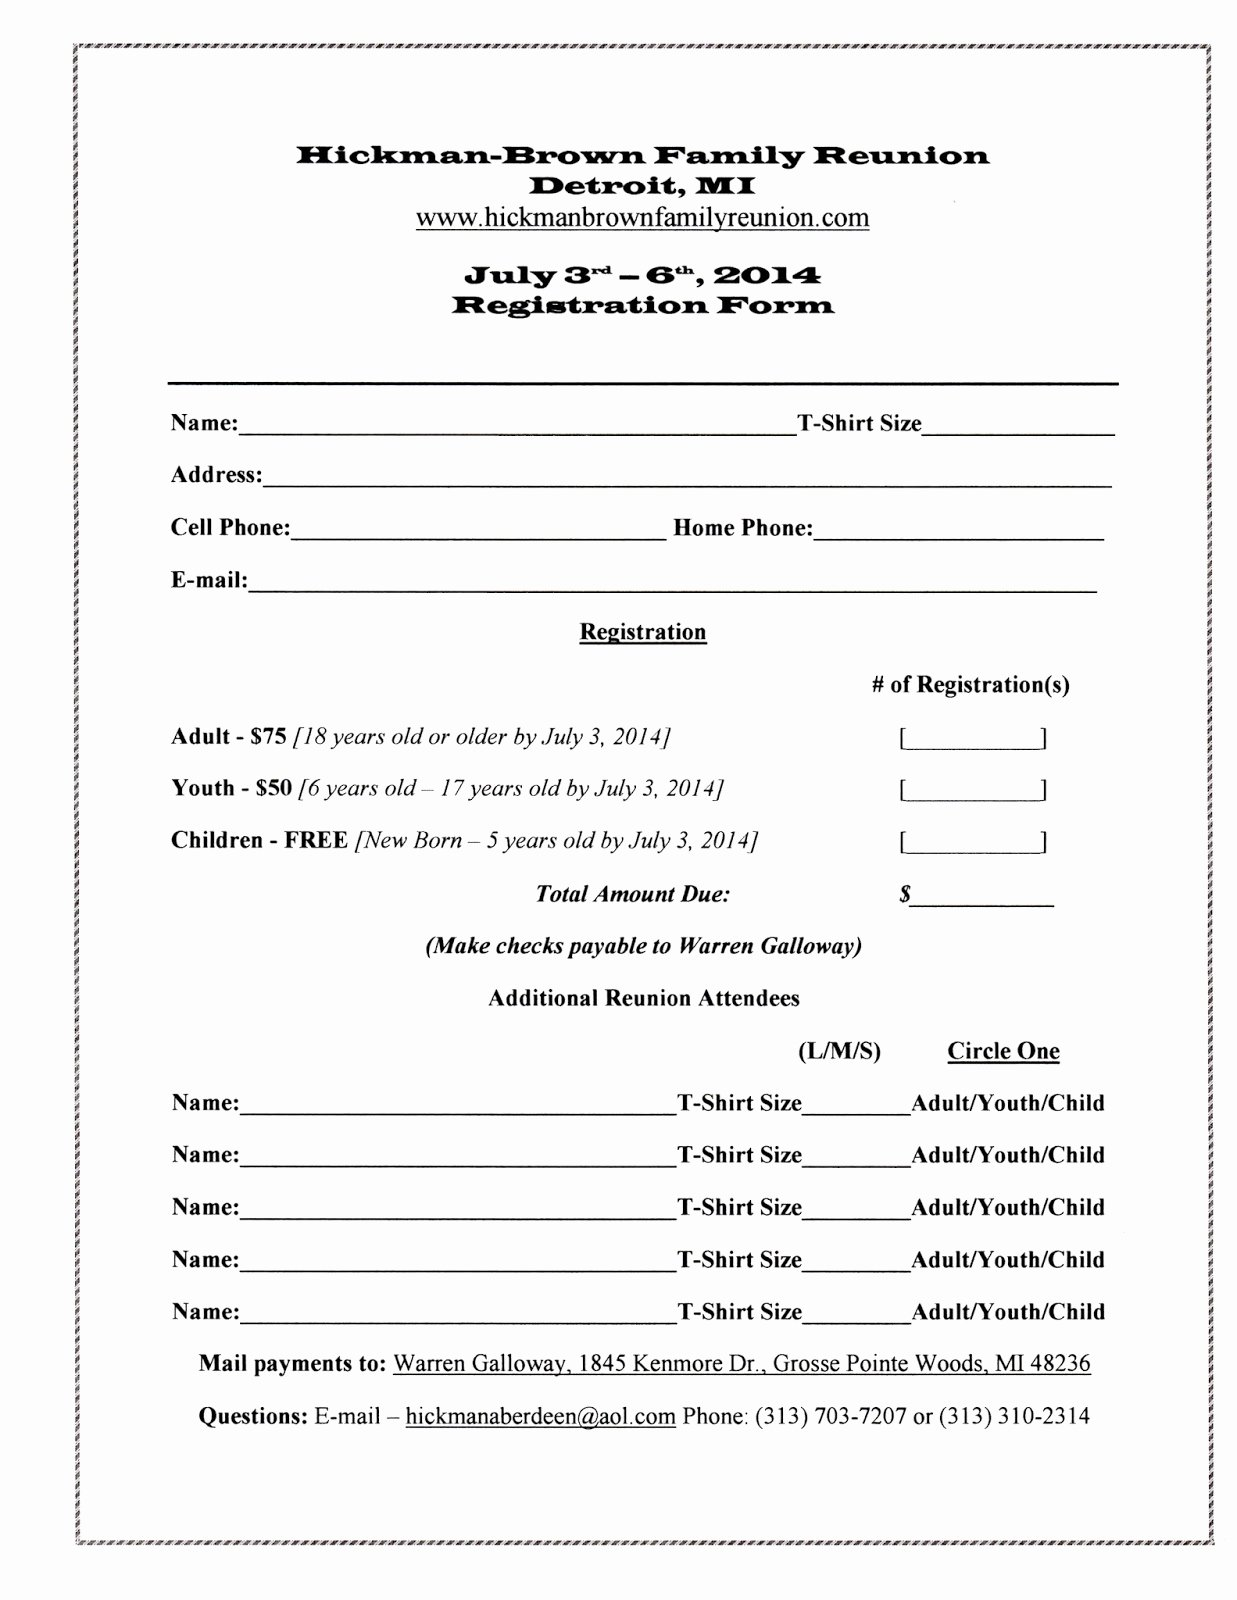 7 Best Of Family Reunion forms Printable Free